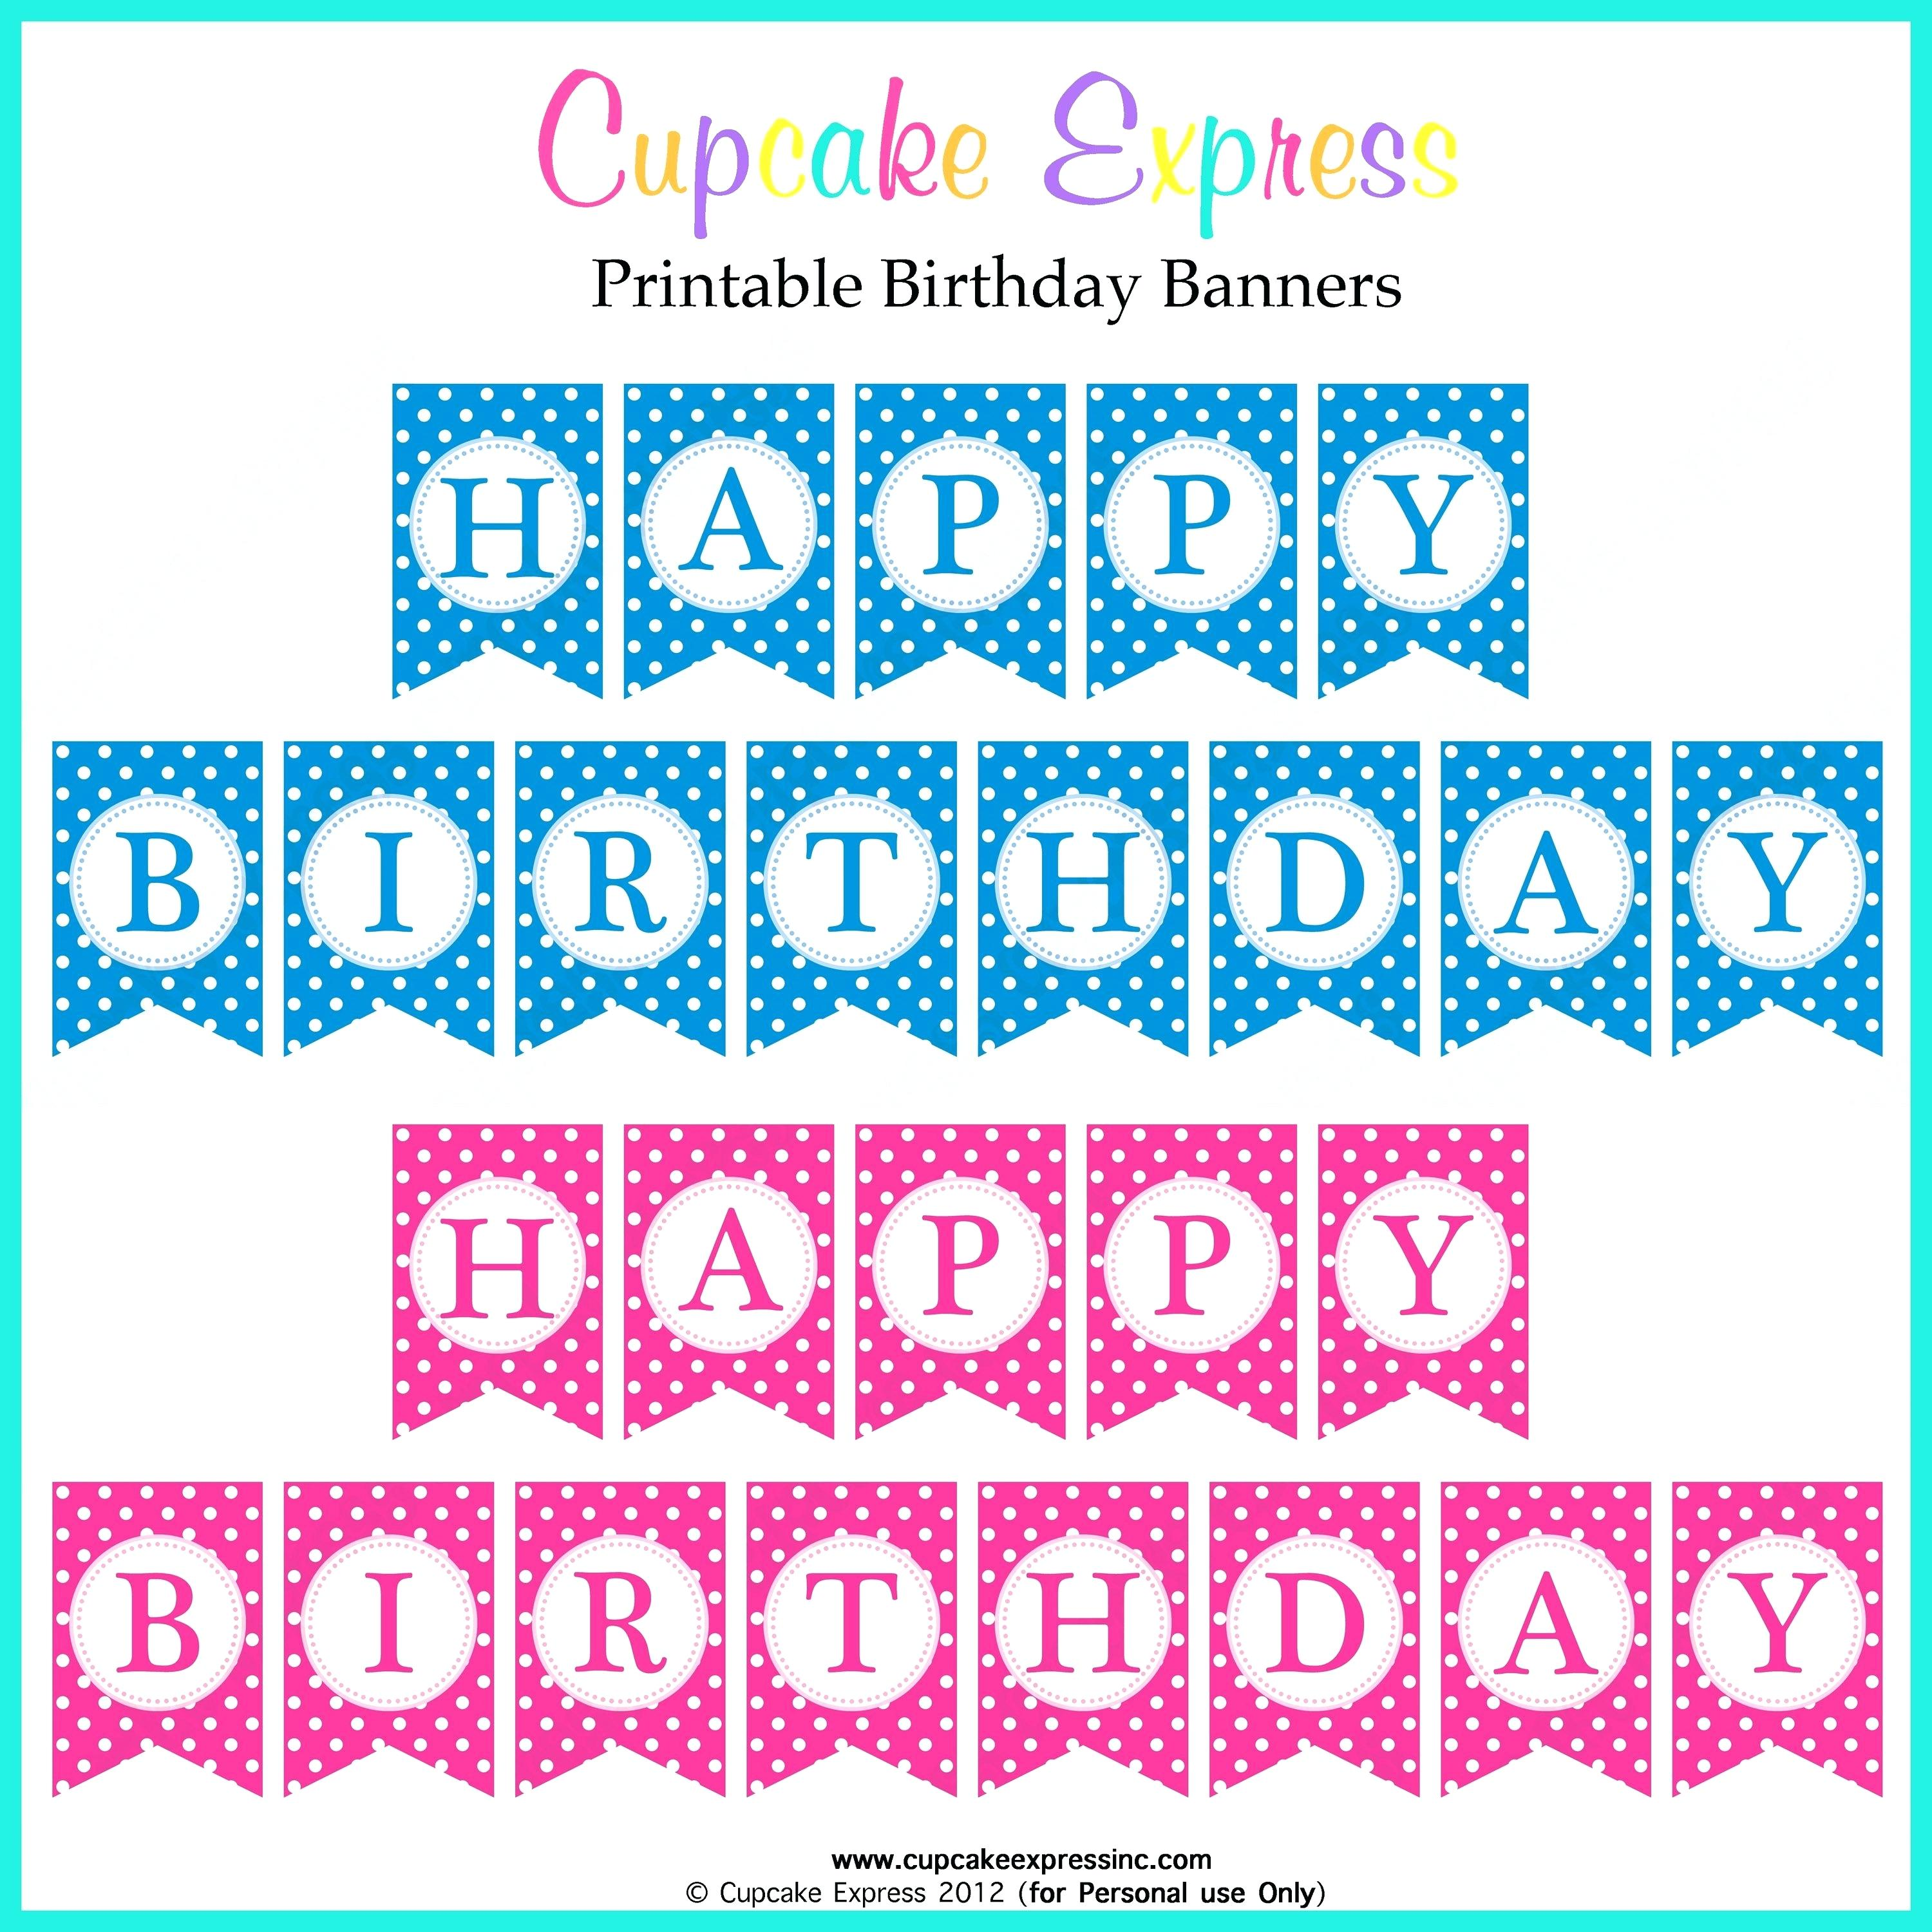 free birthday banner template printable ; tiny-pennant-banner-printable-template-free-happy-birthday-banners-pink-blue